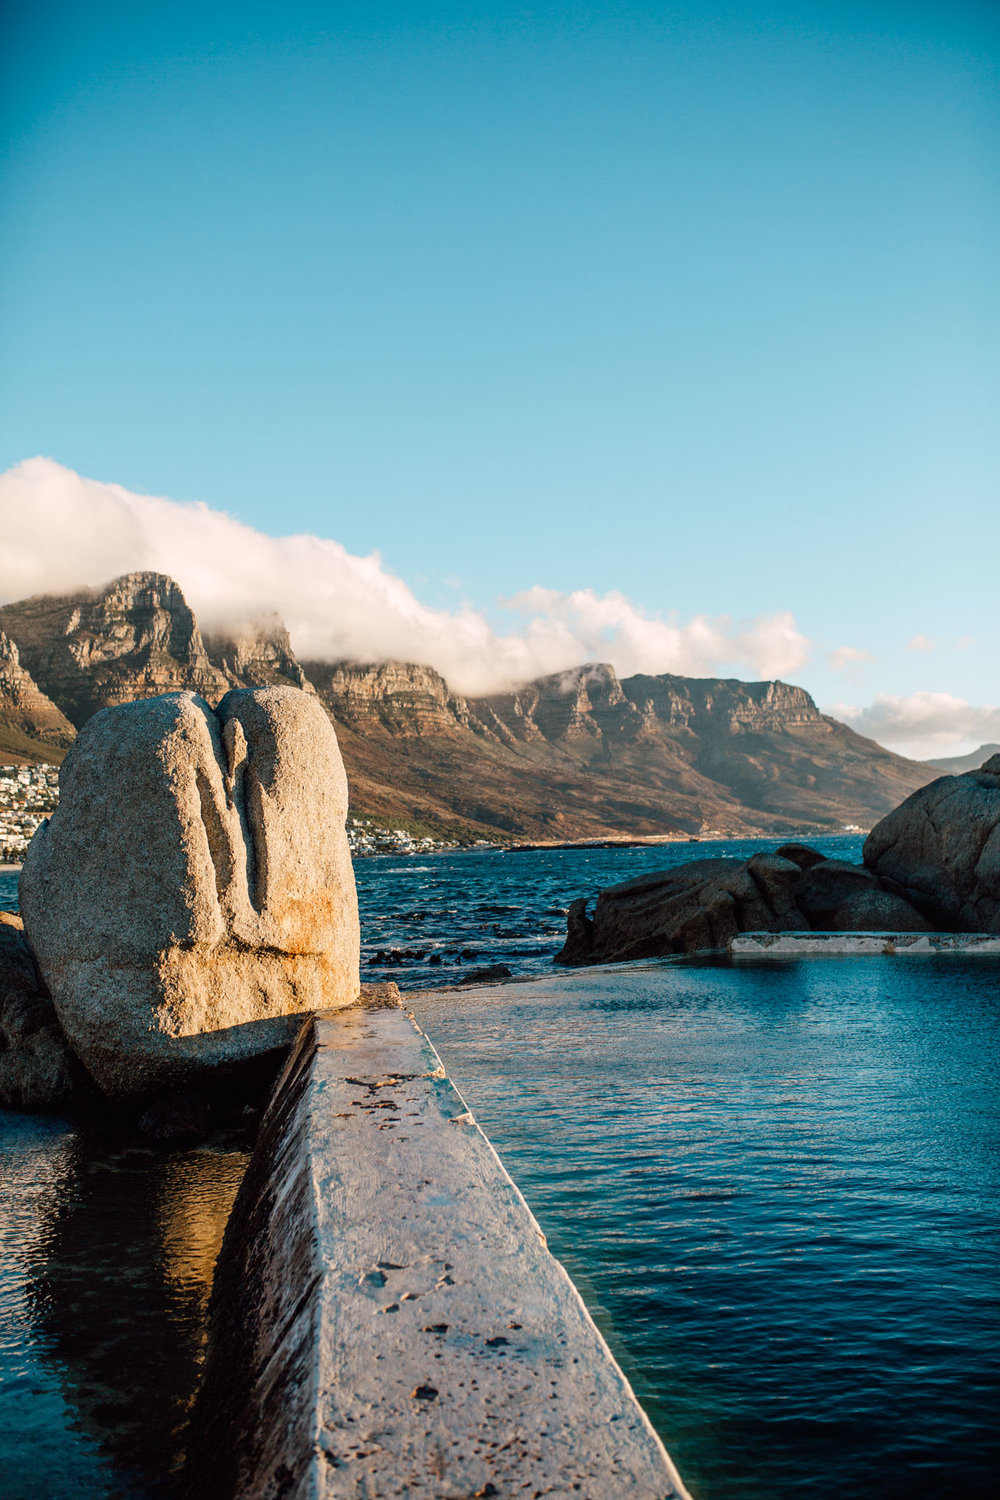 Cape-Town-Pia-Anna-Christian-Wedding-Photography-South-Africa-CJ-30.jpg